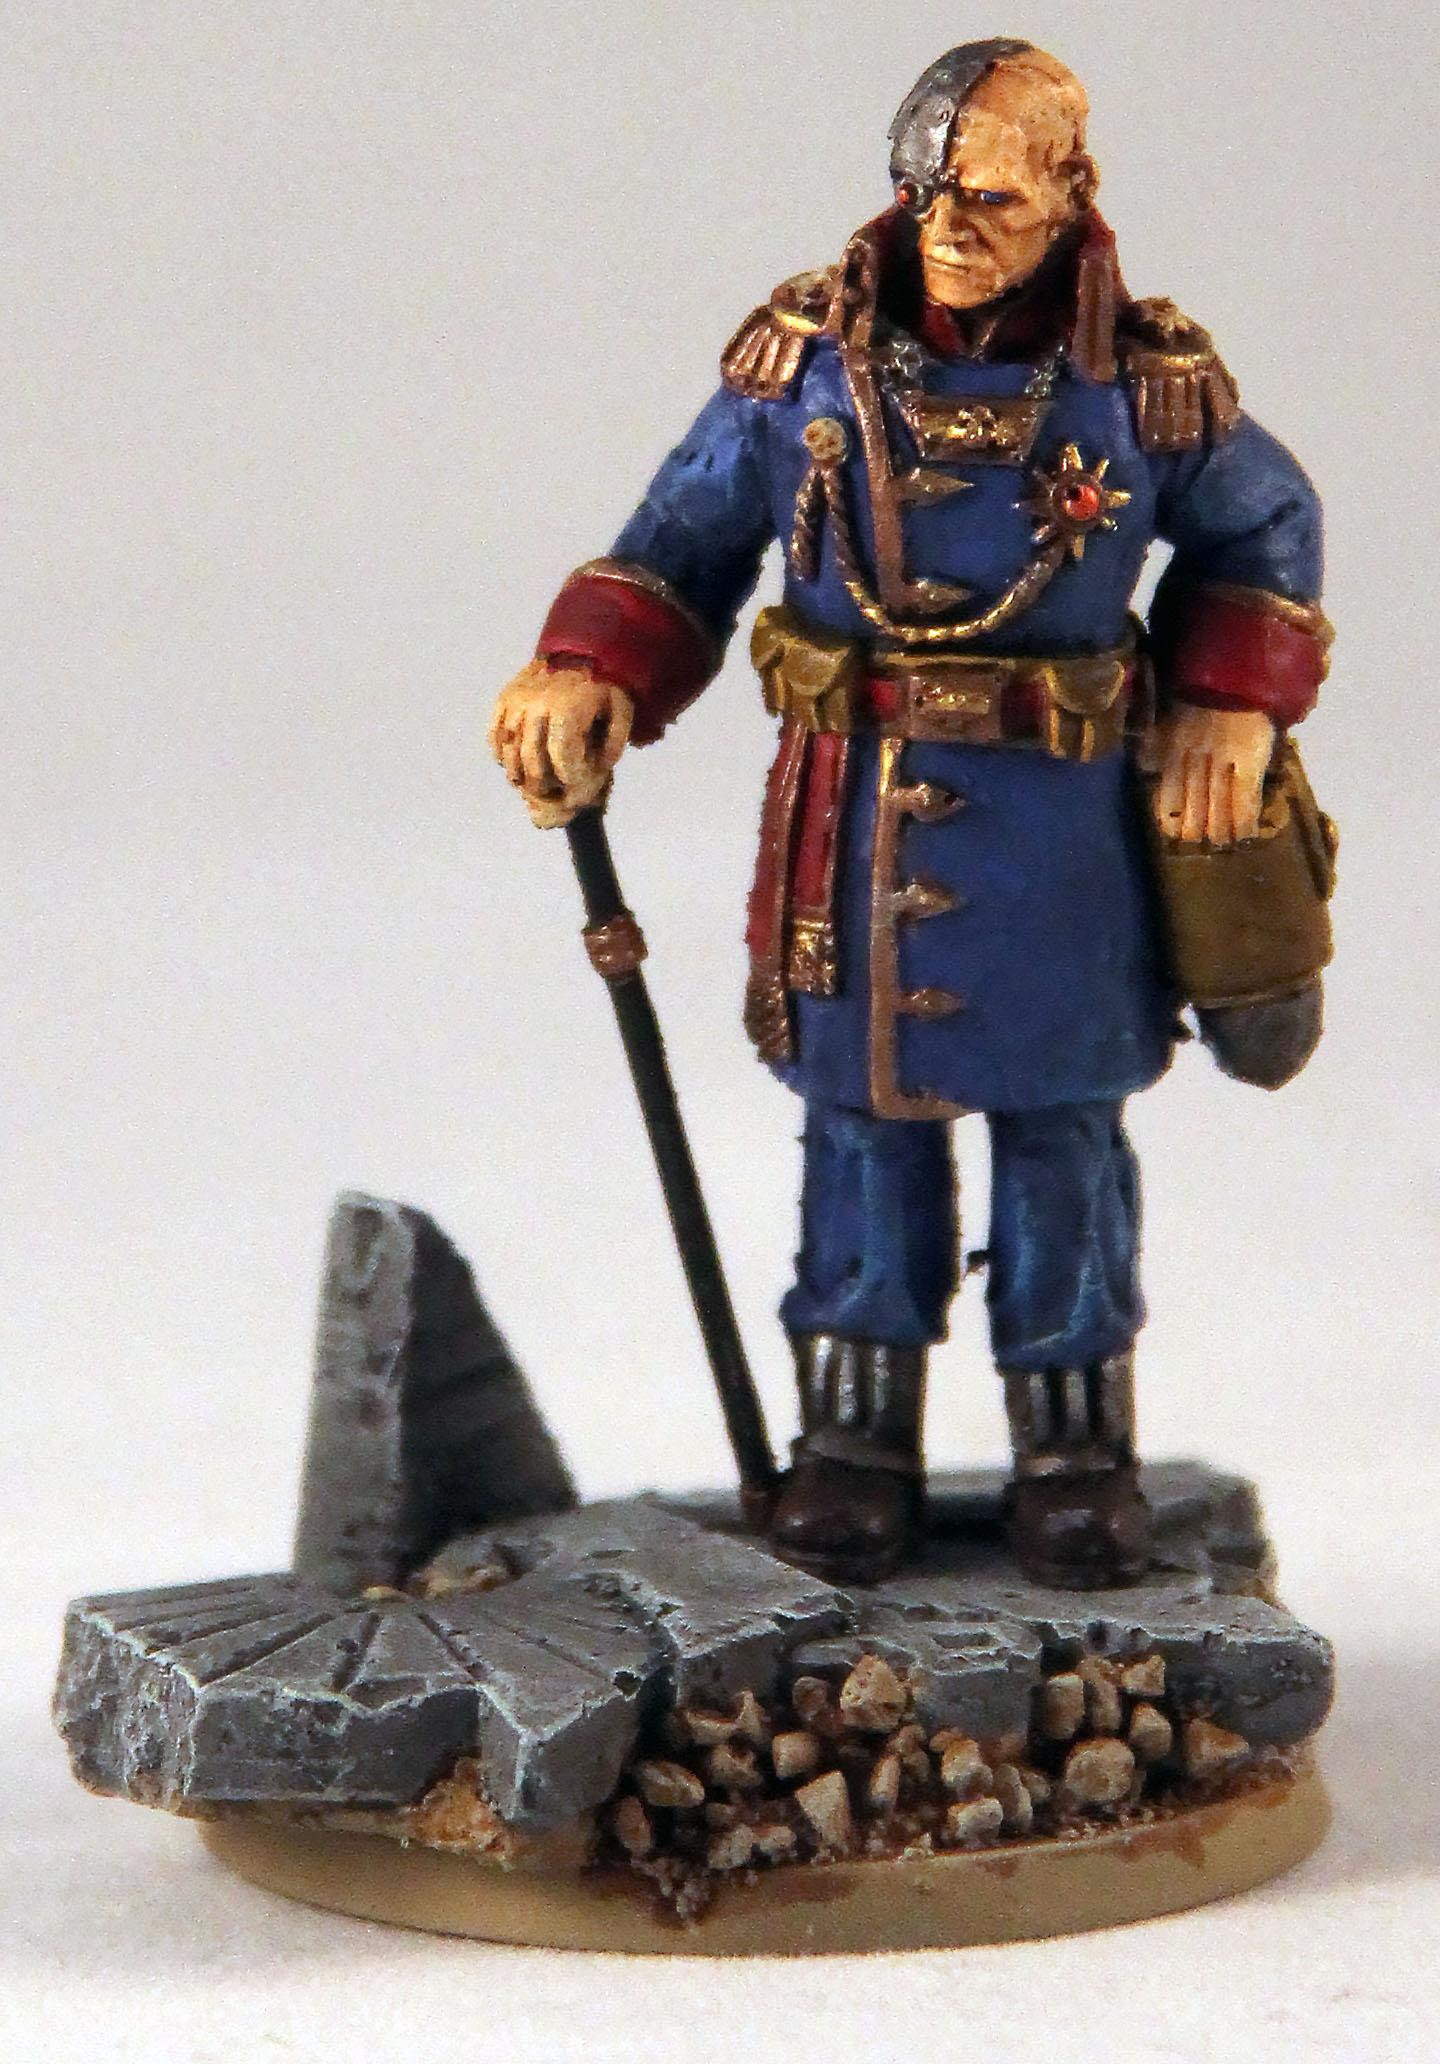 54mm, Imperial Guard, Imperial Officer, Officer